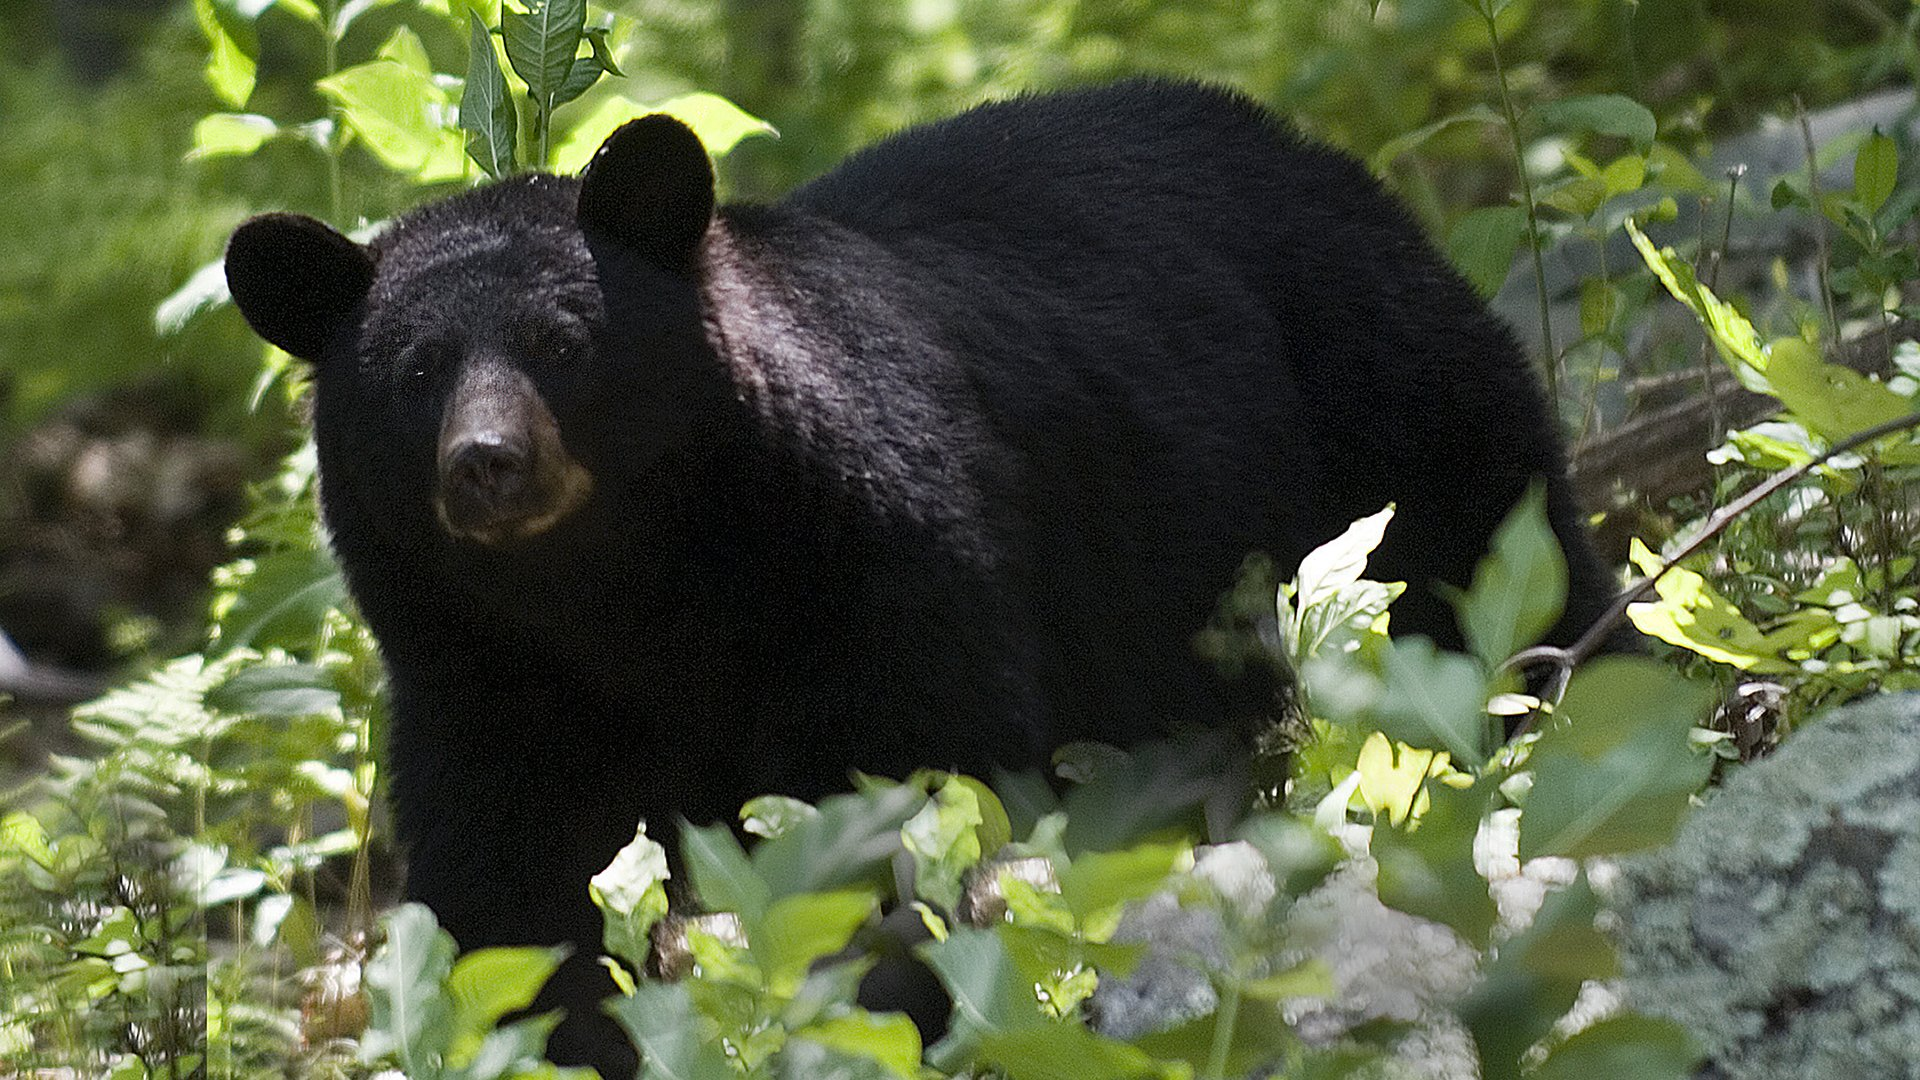 https://0901.nccdn.net/4_2/000/000/06b/a1b/Black-Bear.jpg